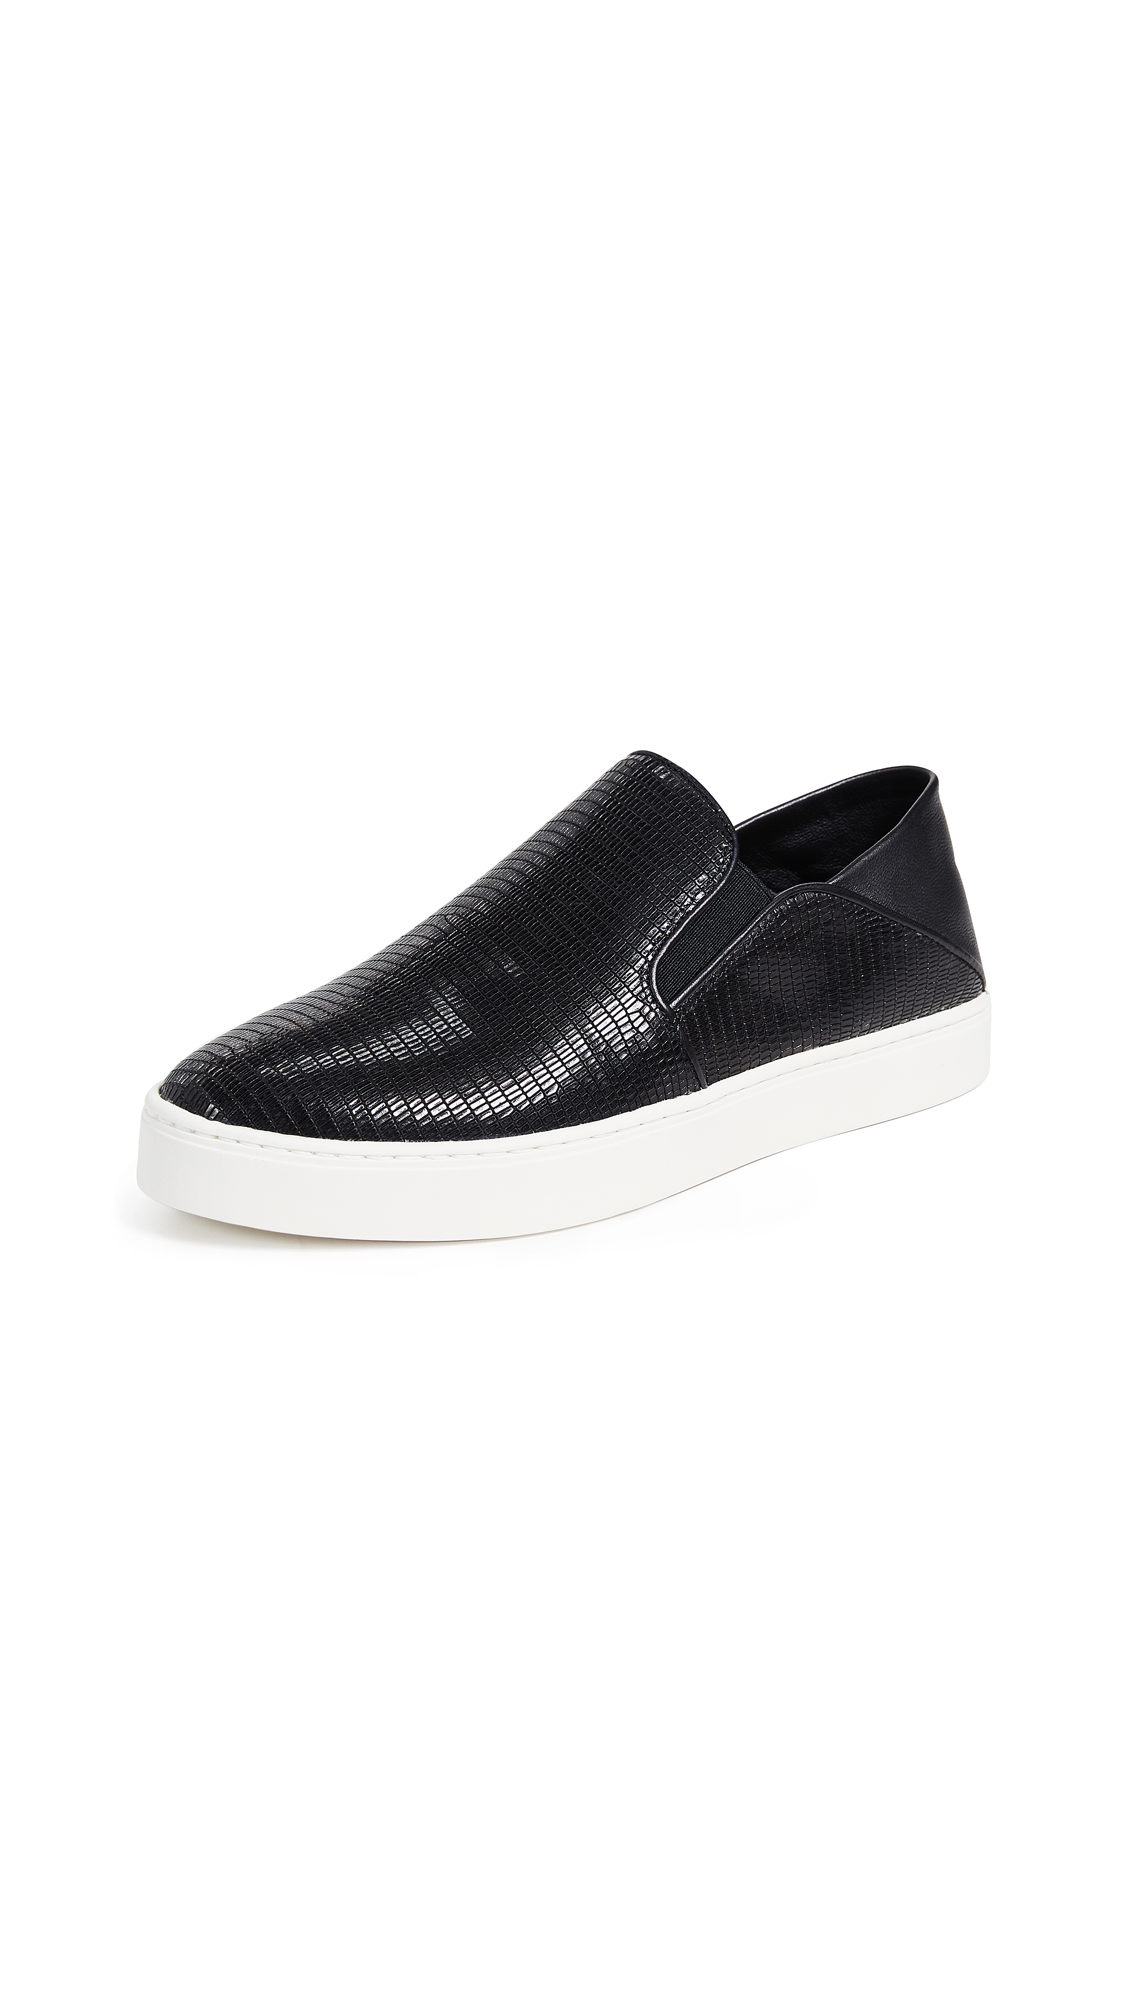 Vince Garvey Slip On Sneakers - Black